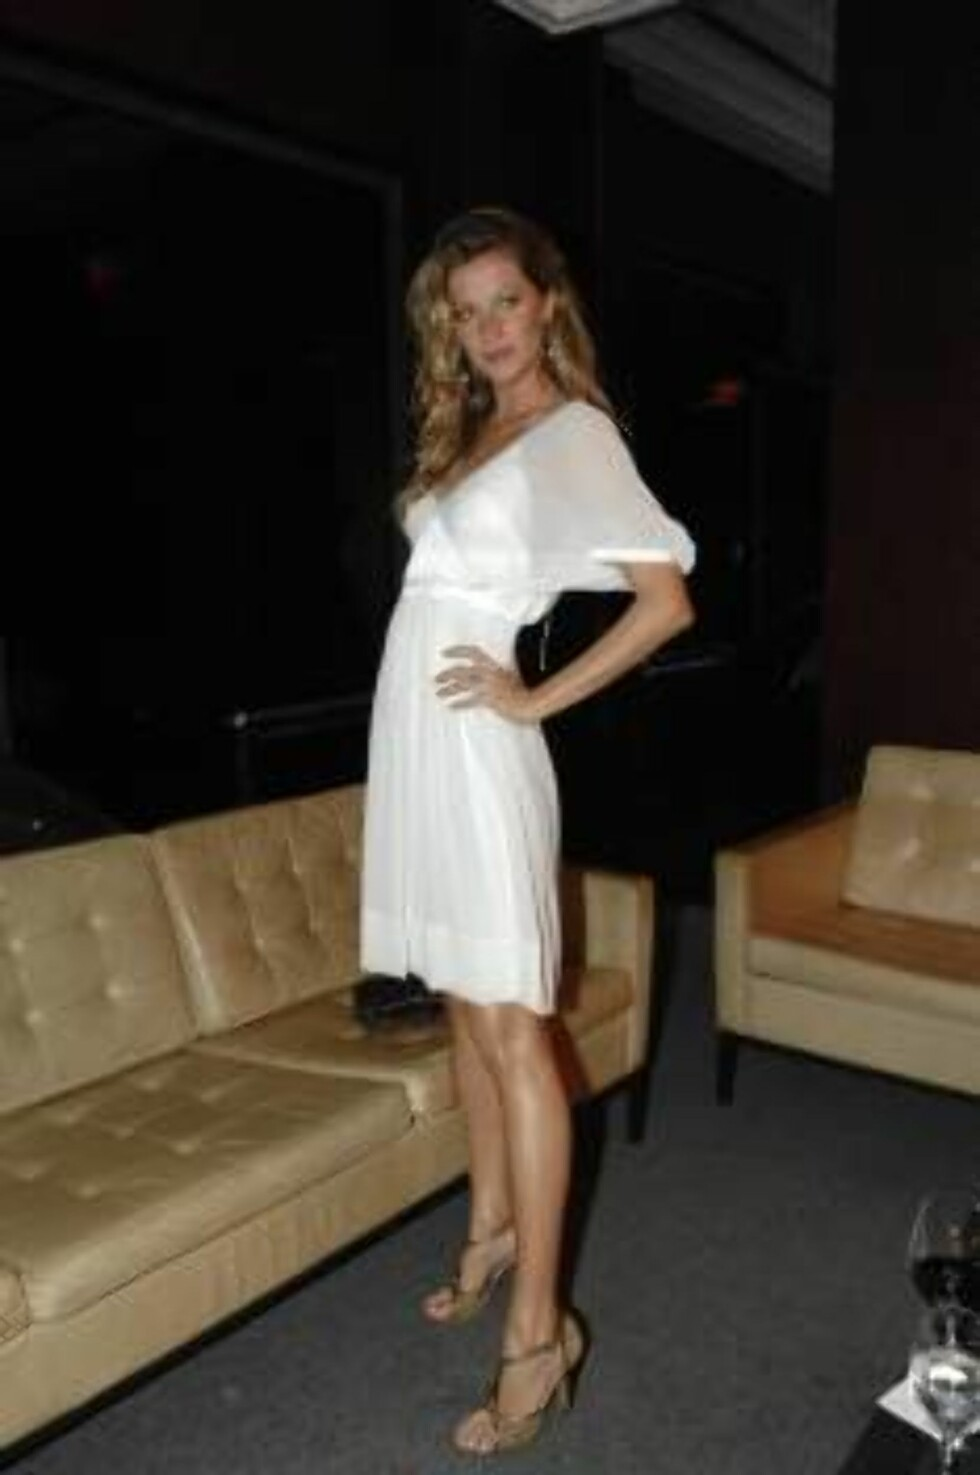 © QUEEN INTERNATIONALREFERENCE: TANCREDO/PREZIA***EXCLUSIVE***SAO PAULO, BRAZIL, 21 NOVEMBER 2006GISELE BUNDCHEN A BEAUTIFUL AND SYMPATHIC BUSINESS WOMANGisele Bundchen attended a business dinner in Casa Fasano dos Jardins in Sao Paulo.She arrived in the